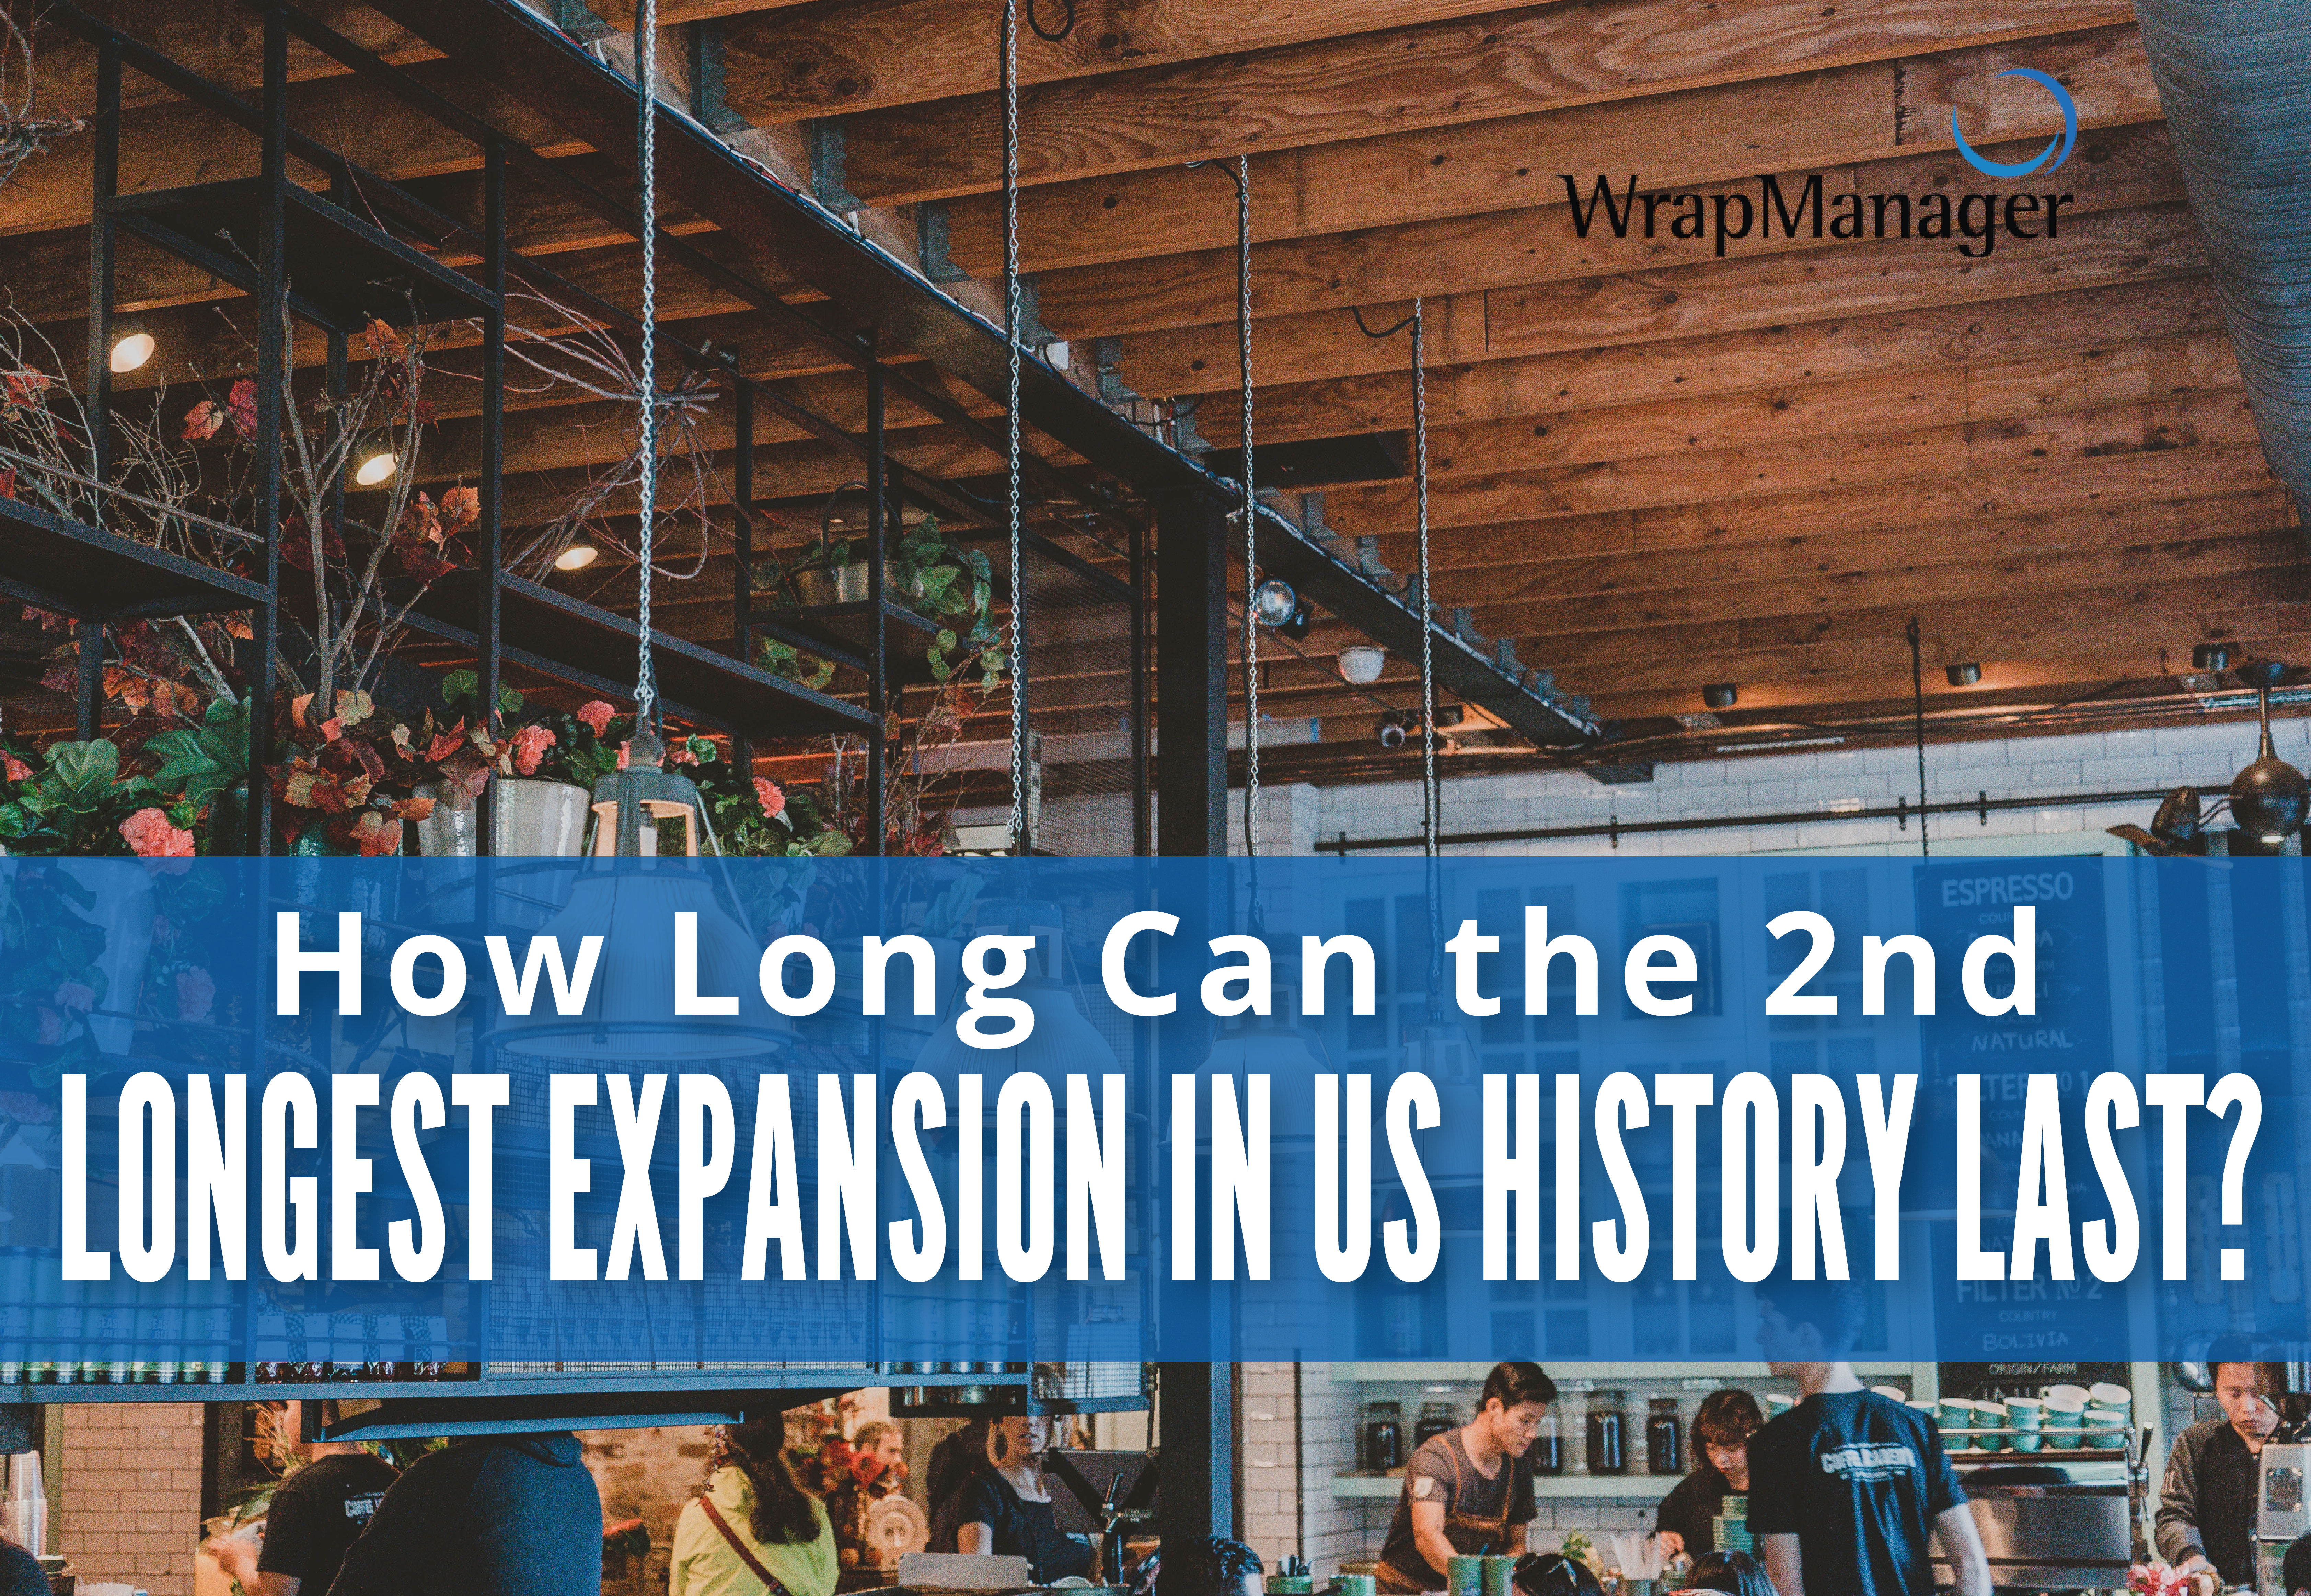 How Long Can the Second Longest Expansion in US History Last